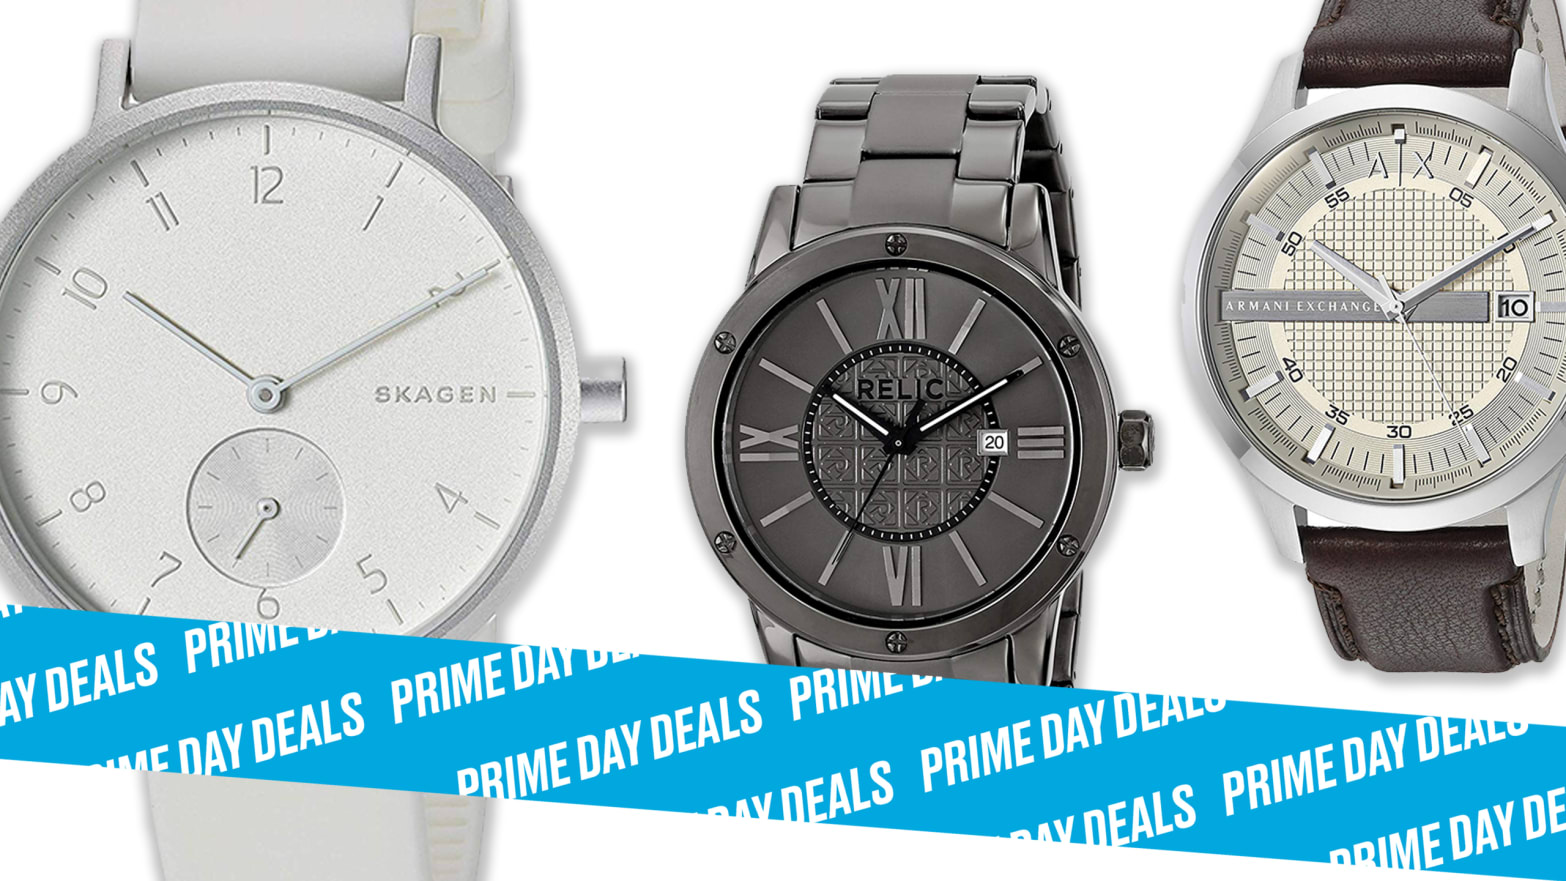 Amazon Prime Day Had the Top Brand Watches You Want at Up to 50% Off